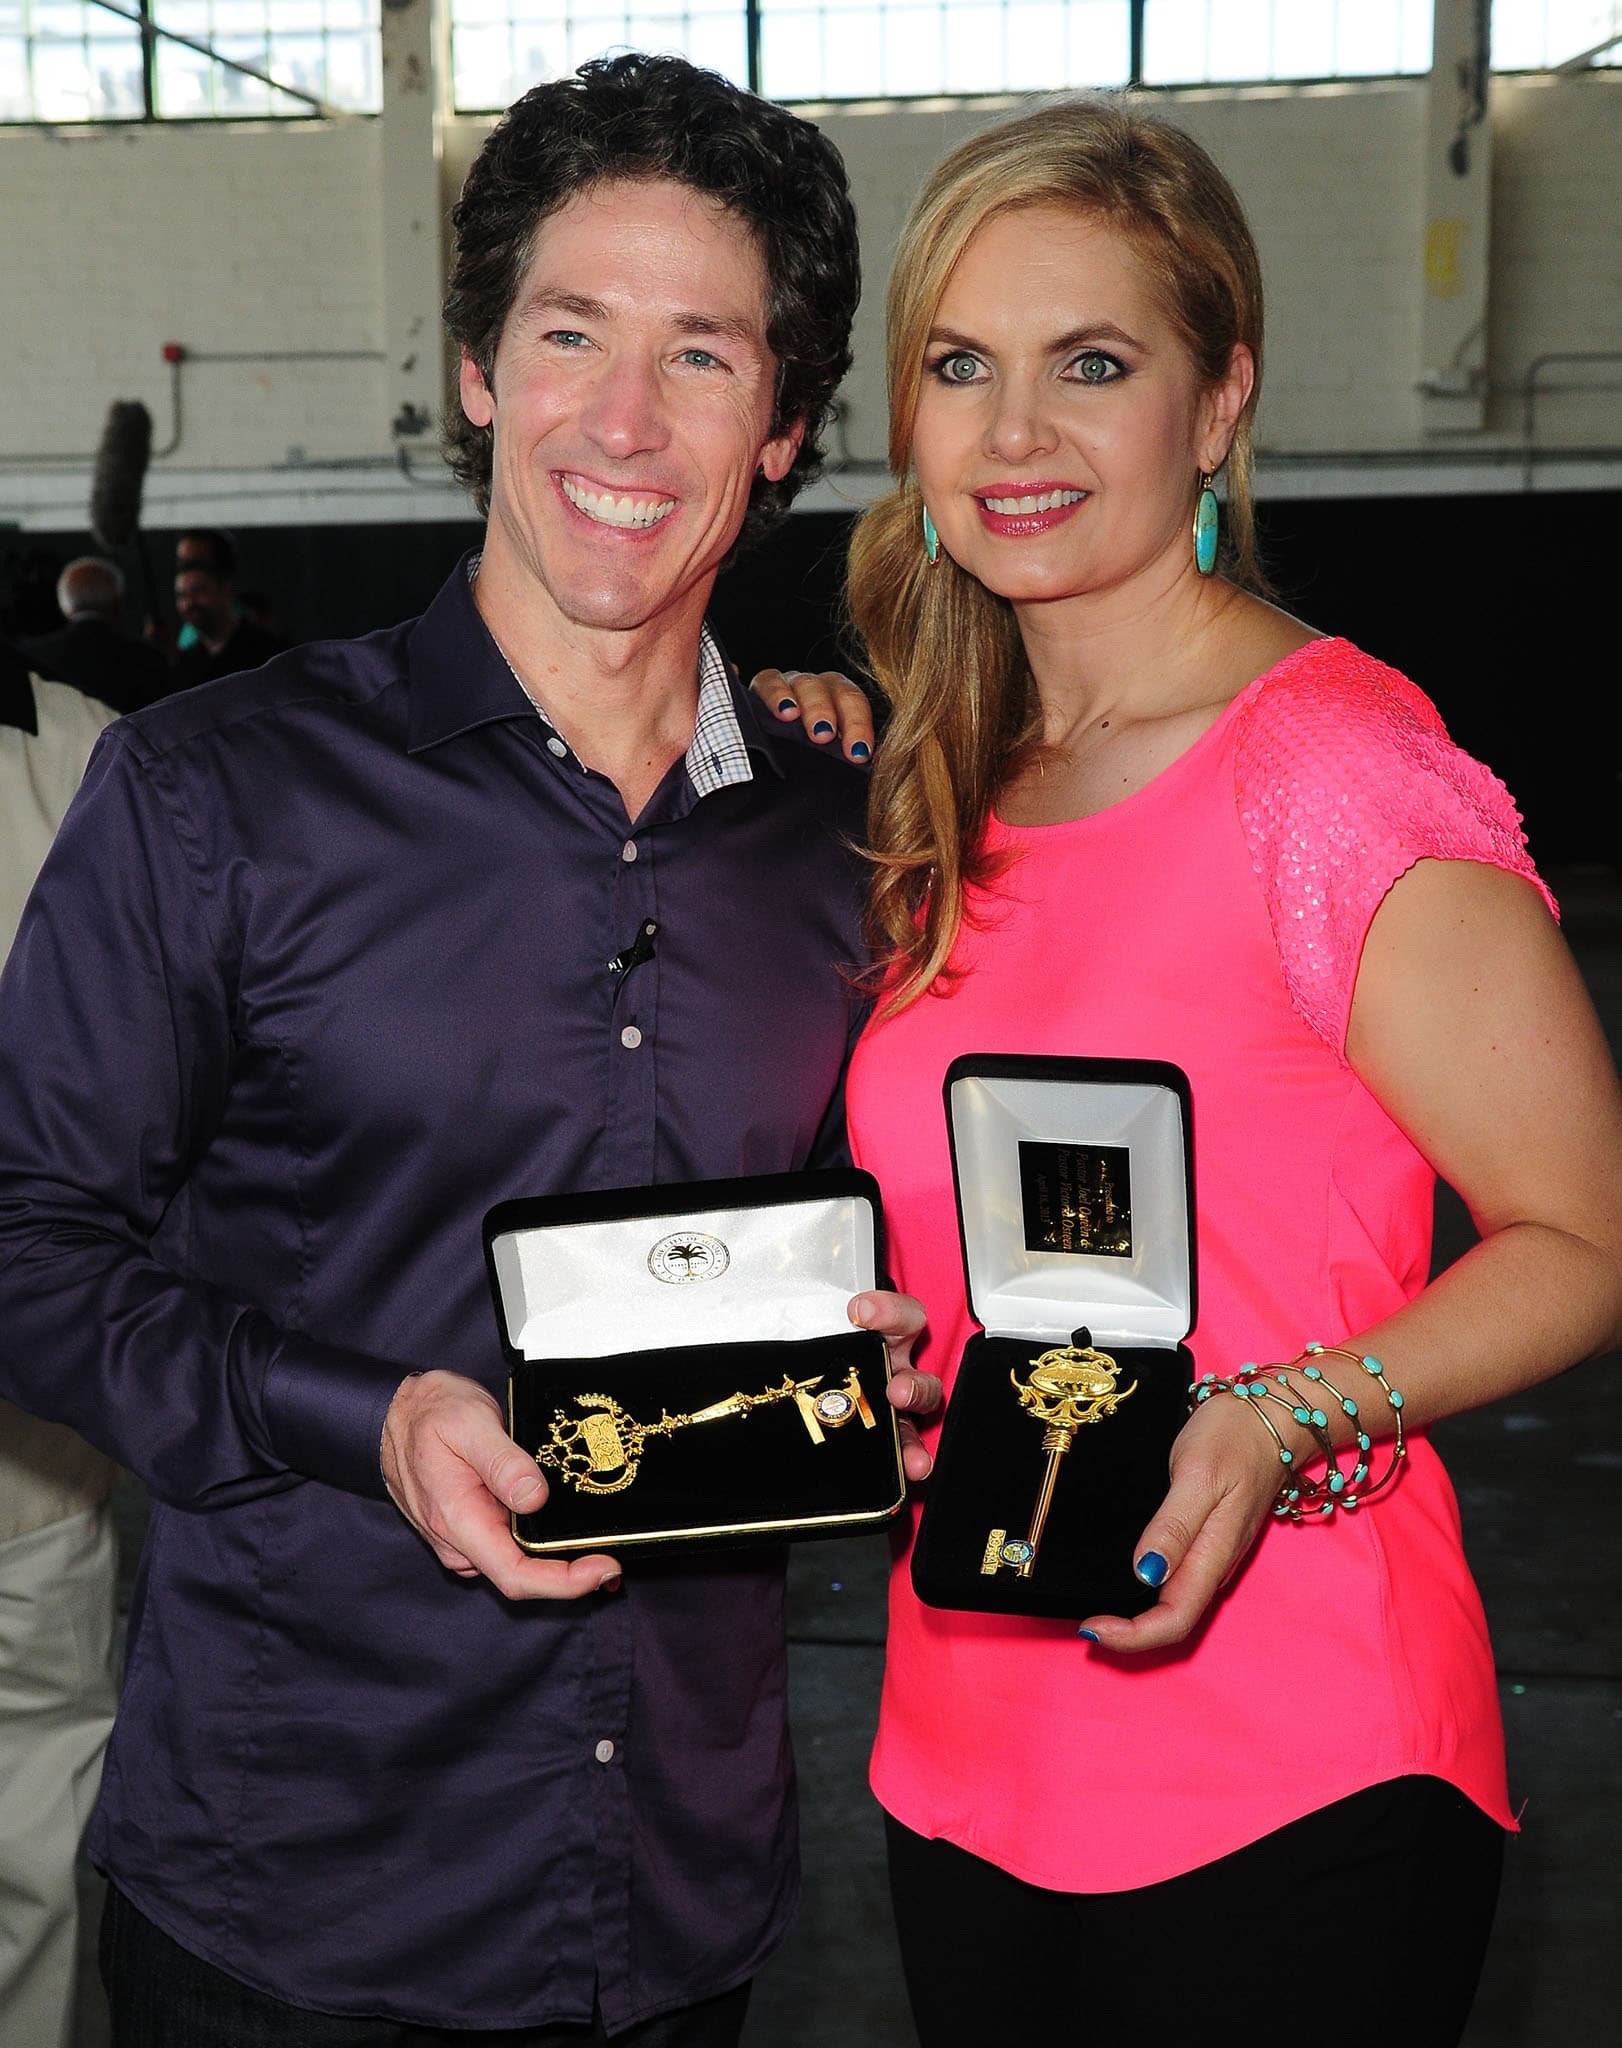 Pastor Joel Osteen and his wife Victoria, pictured in 2013, are rumored to be getting divorced